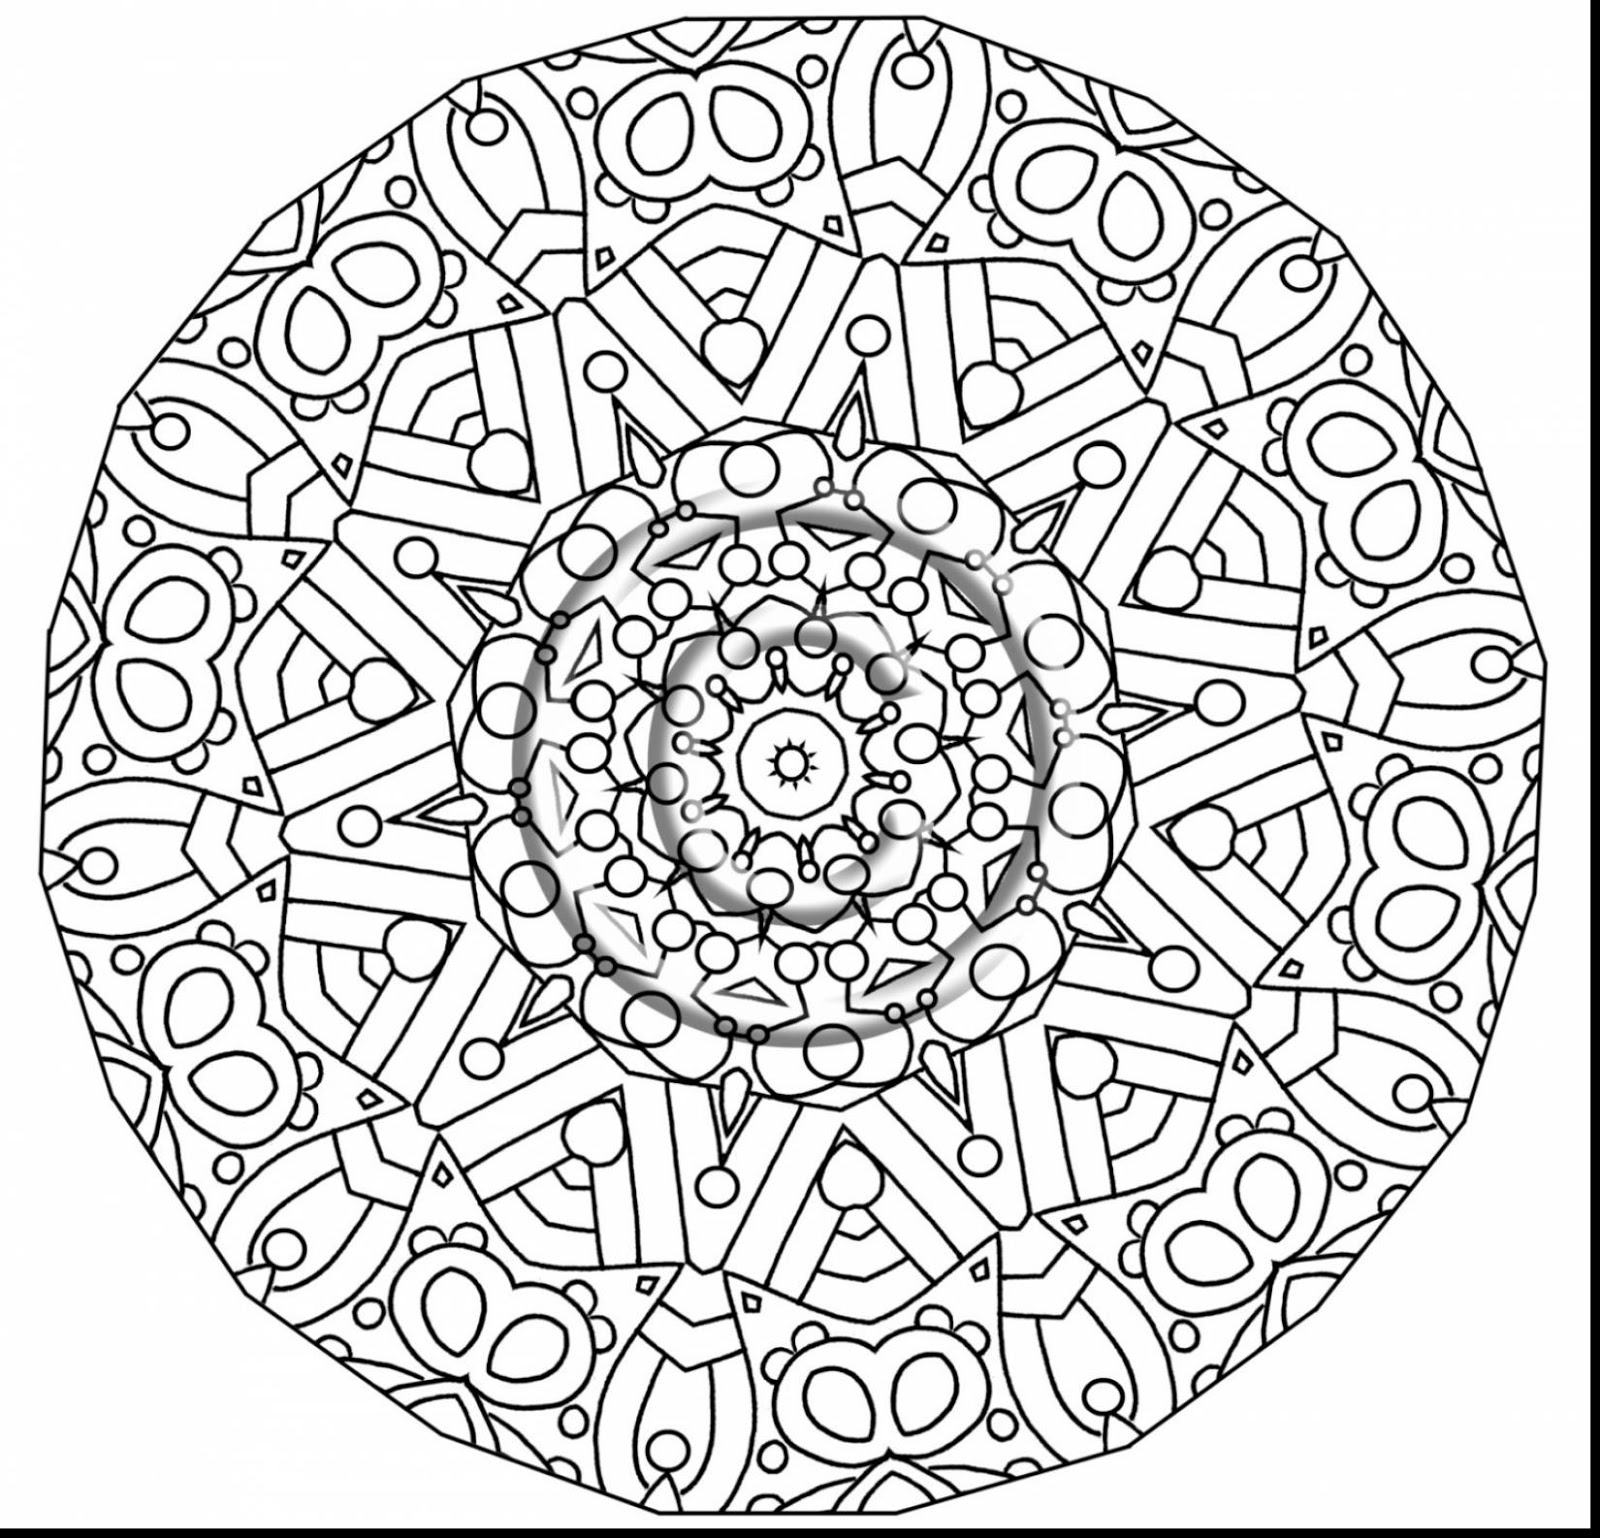 trippy coloring pages printable psychedelic coloring pages to download and print for free trippy printable coloring pages